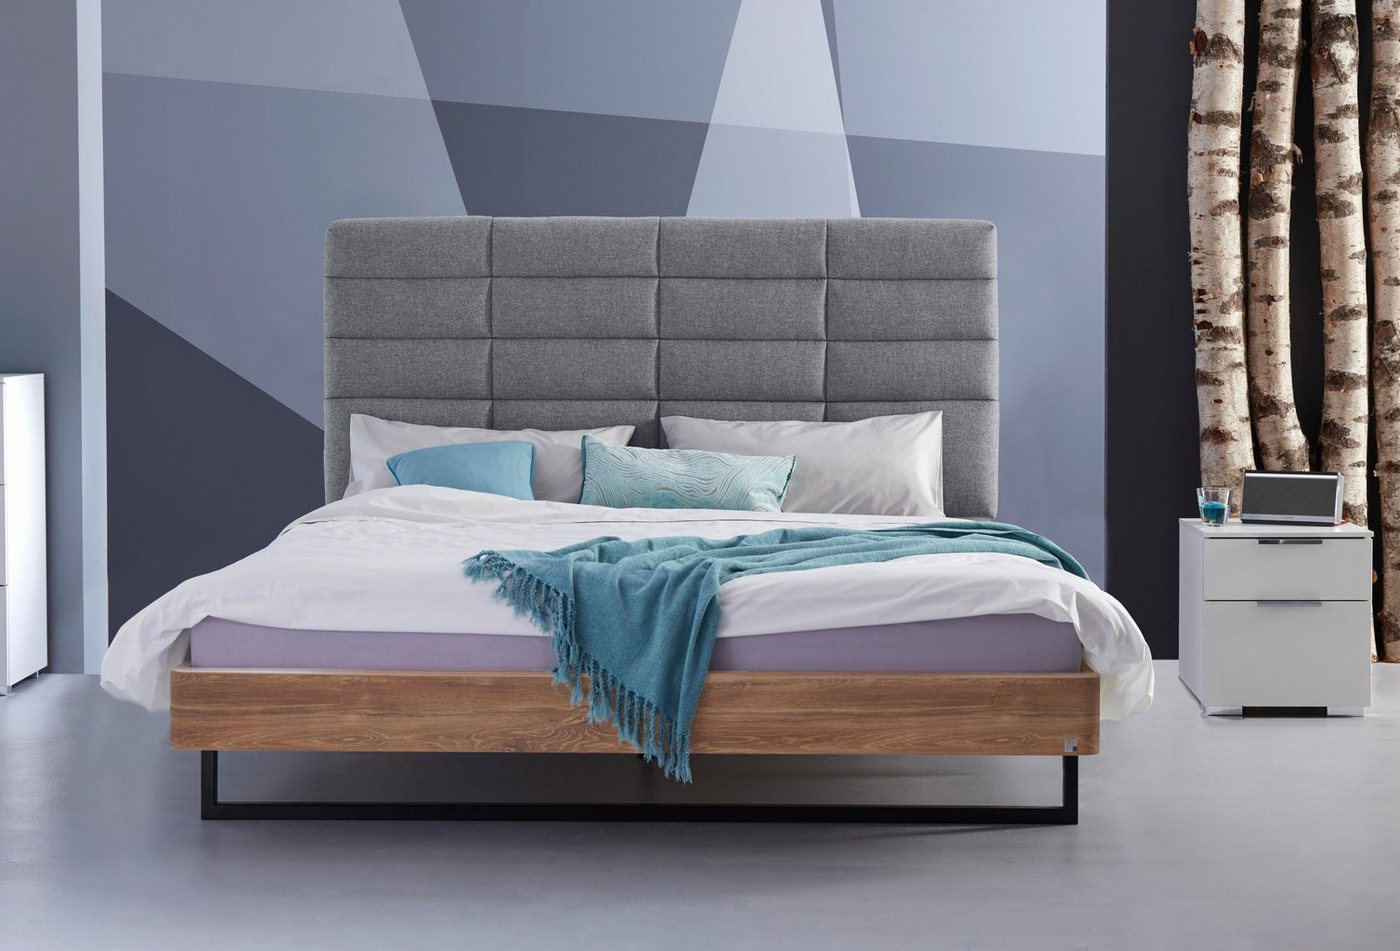 INOSIGN futonbed, made in Germany